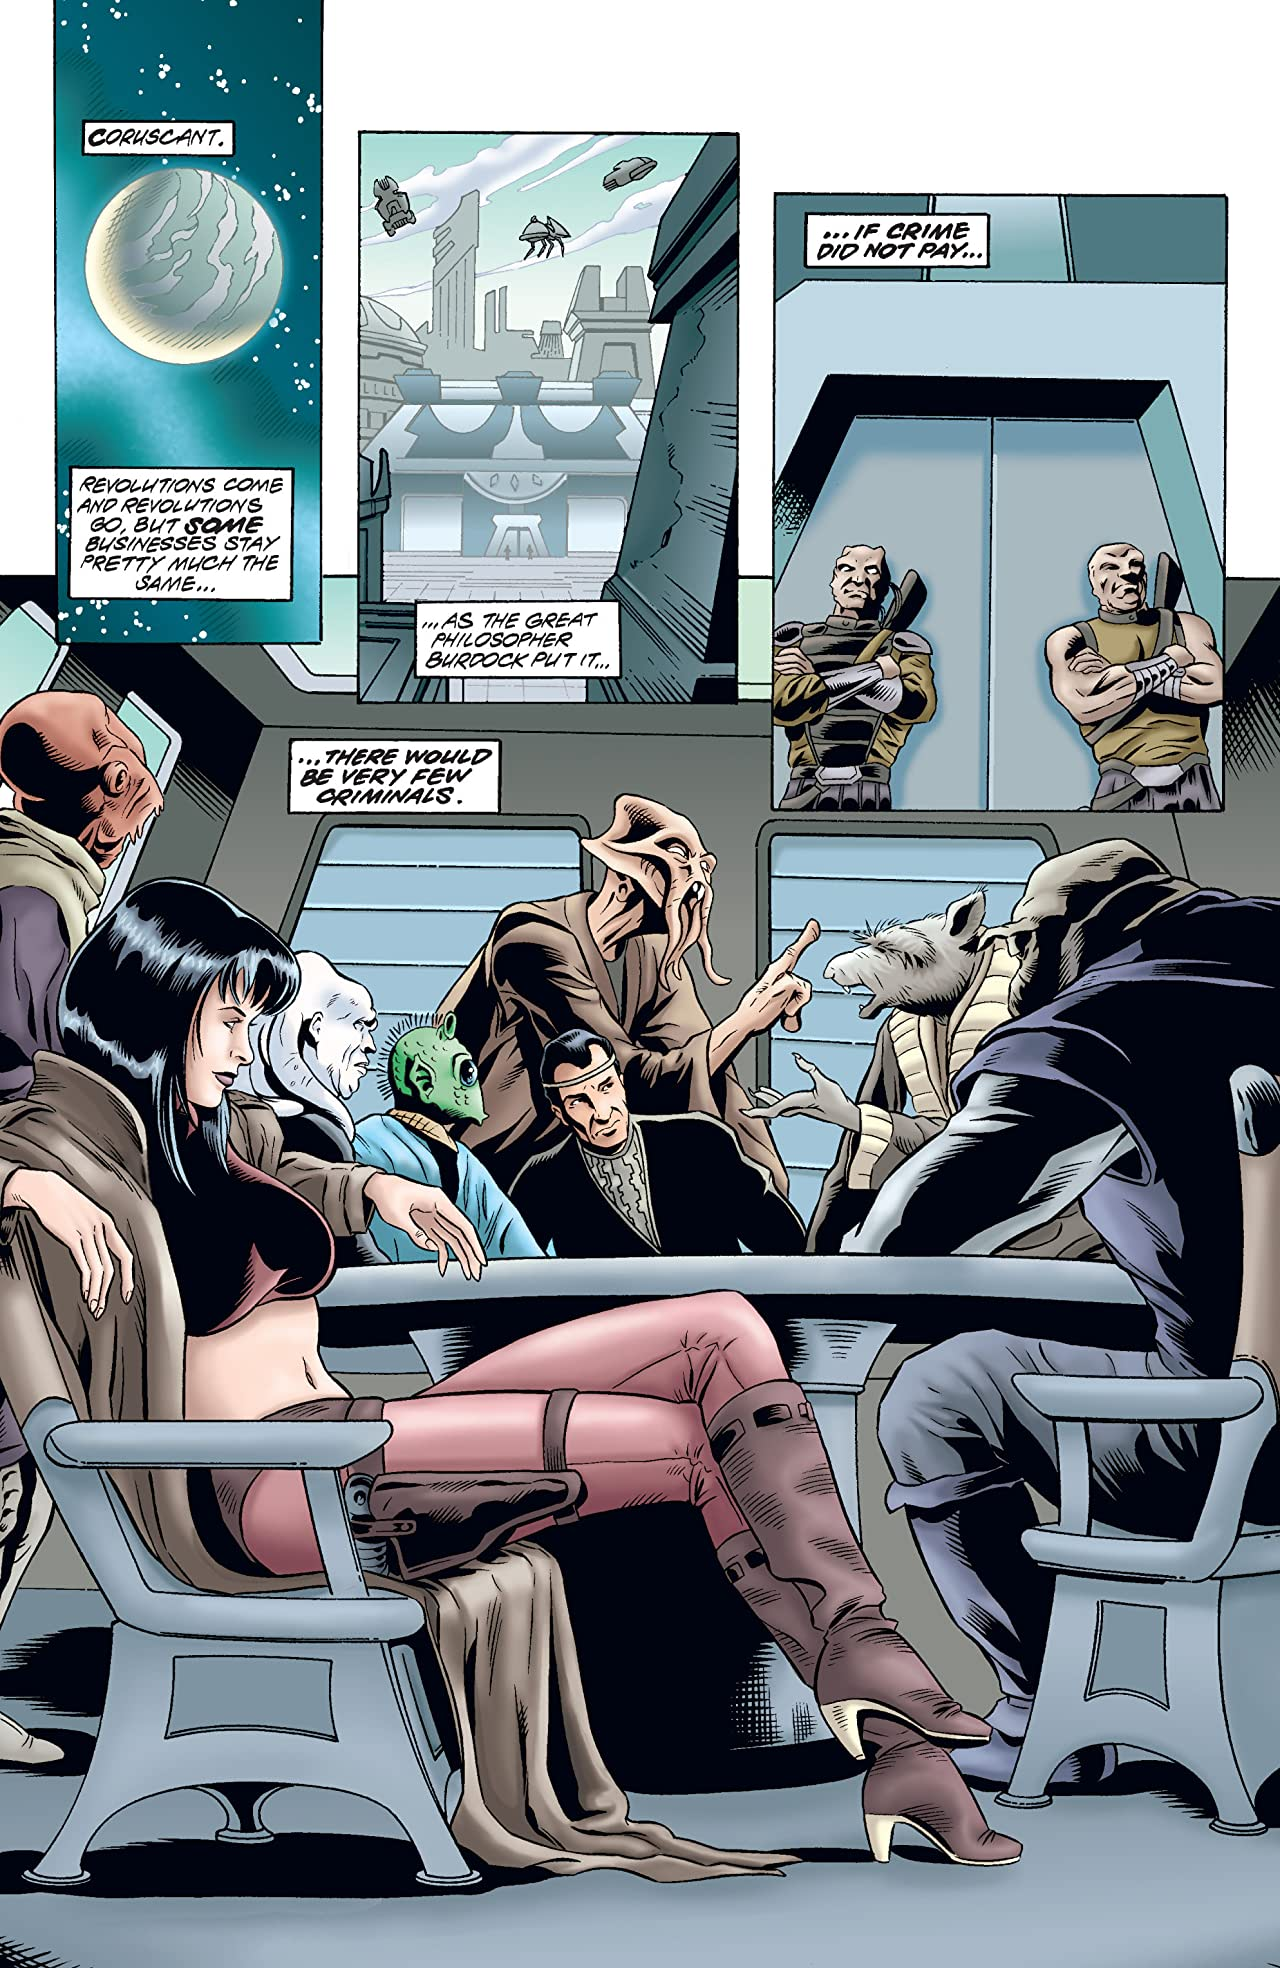 Star Wars: Shadows of the Empire - Evolution (1998) #3 (of 5)